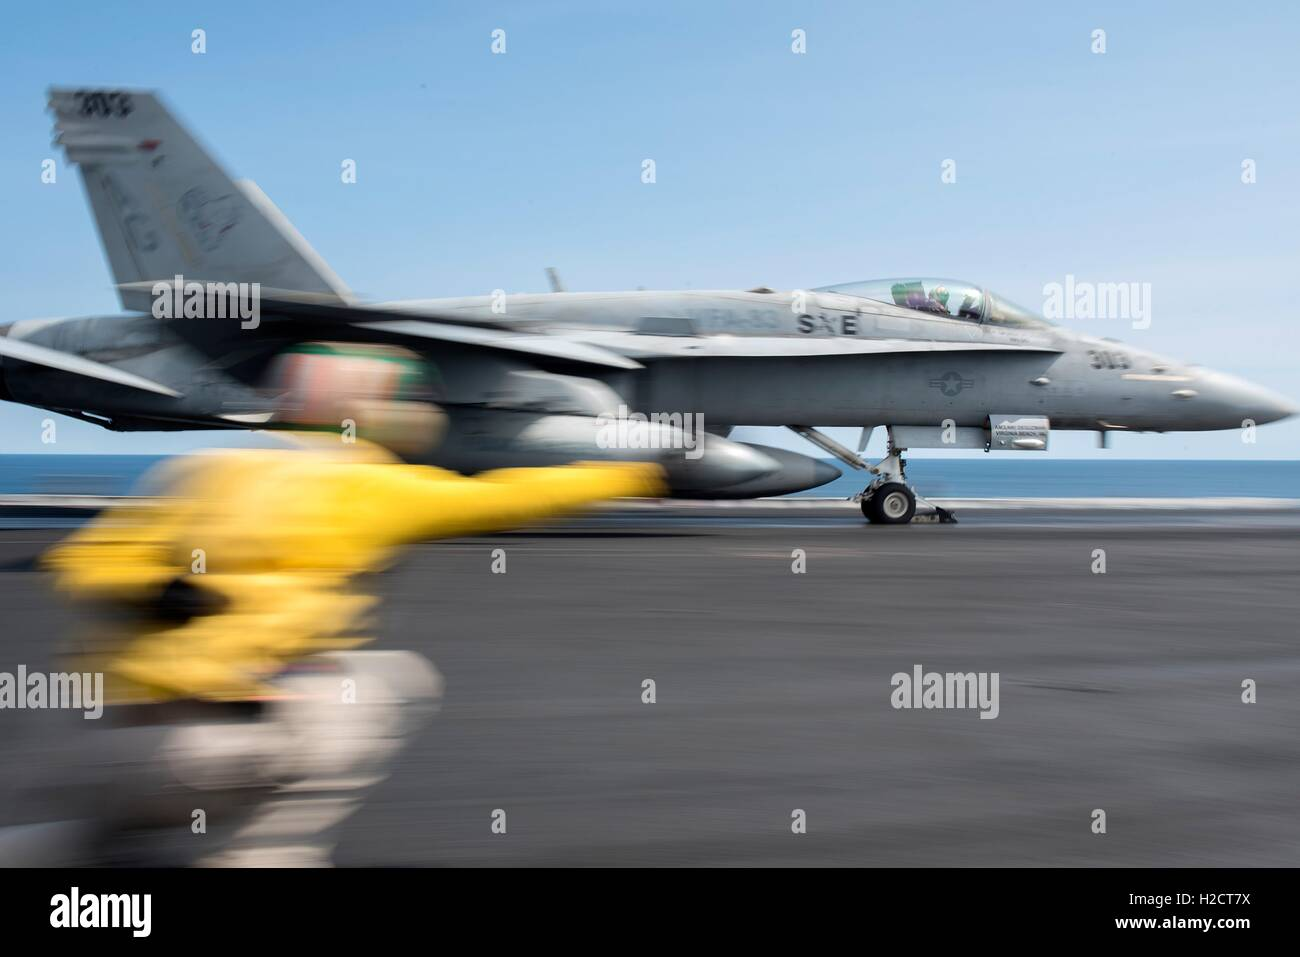 A U.S. Navy flight deck crew officer signals for take-off as a F/A-18C Hornet jet aircraft launches from the flight - Stock Image